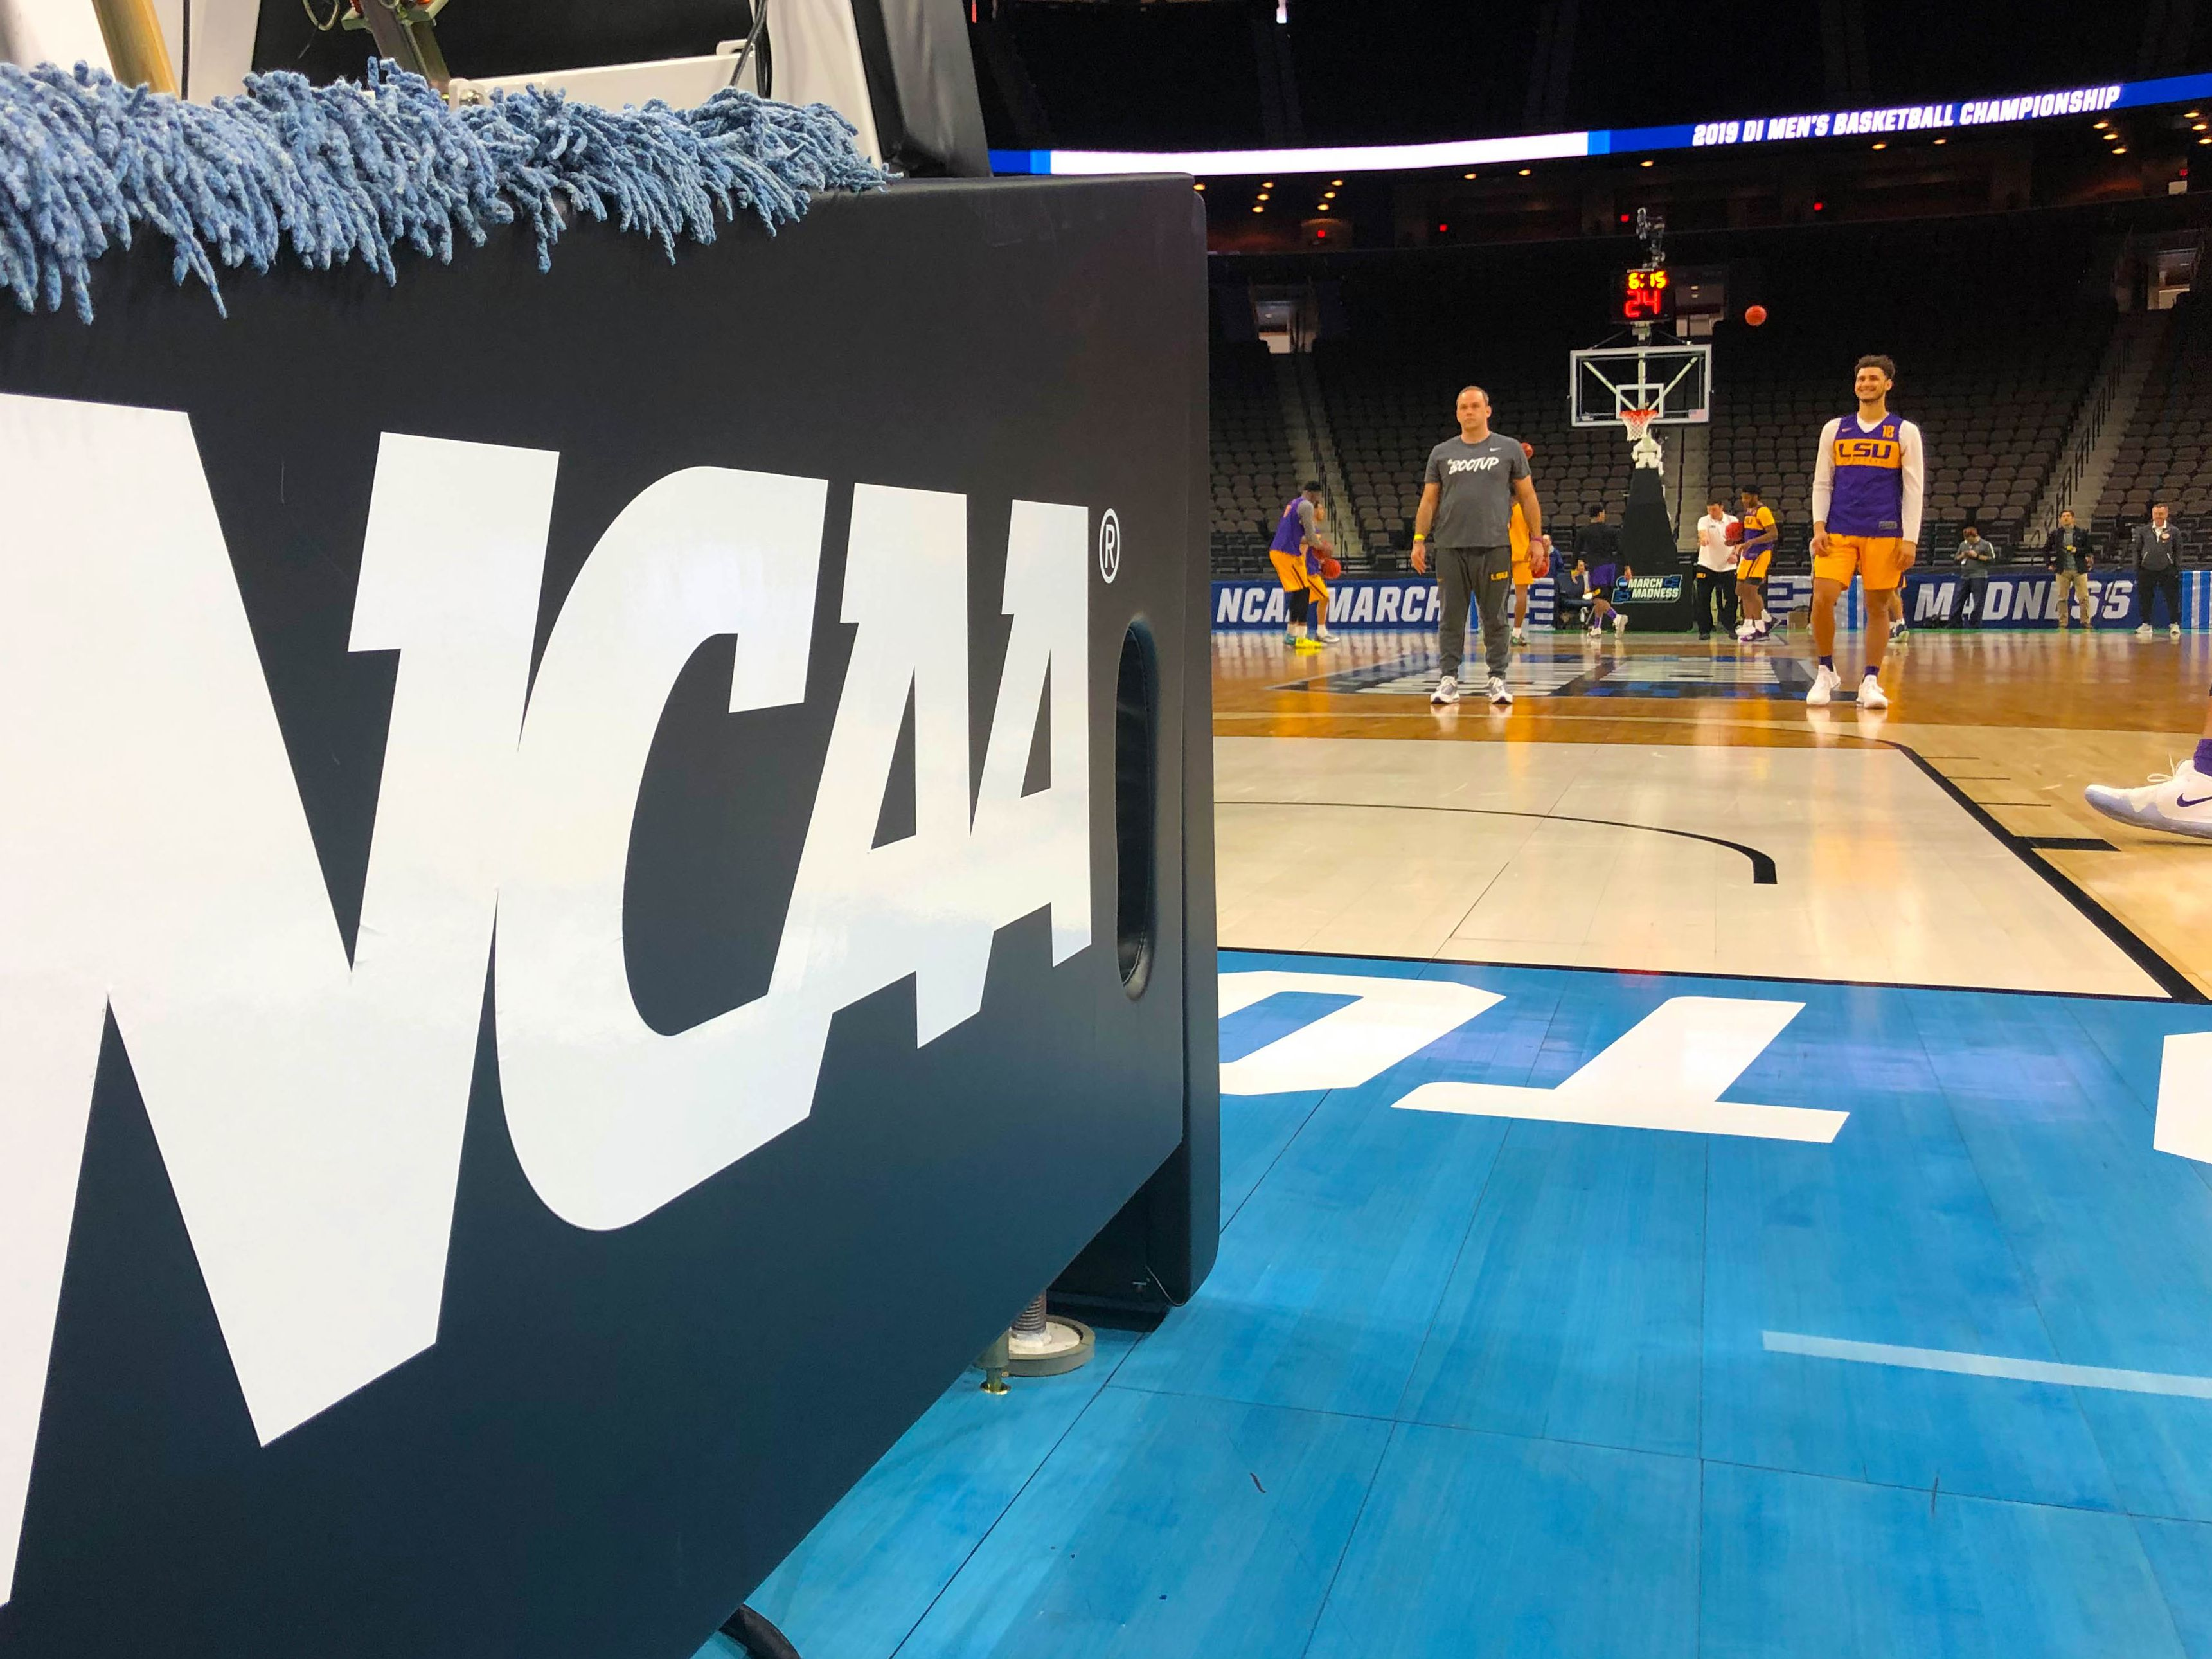 Betting on March Madness? You're one of 47 million Americans projected to spend $8.5 billion